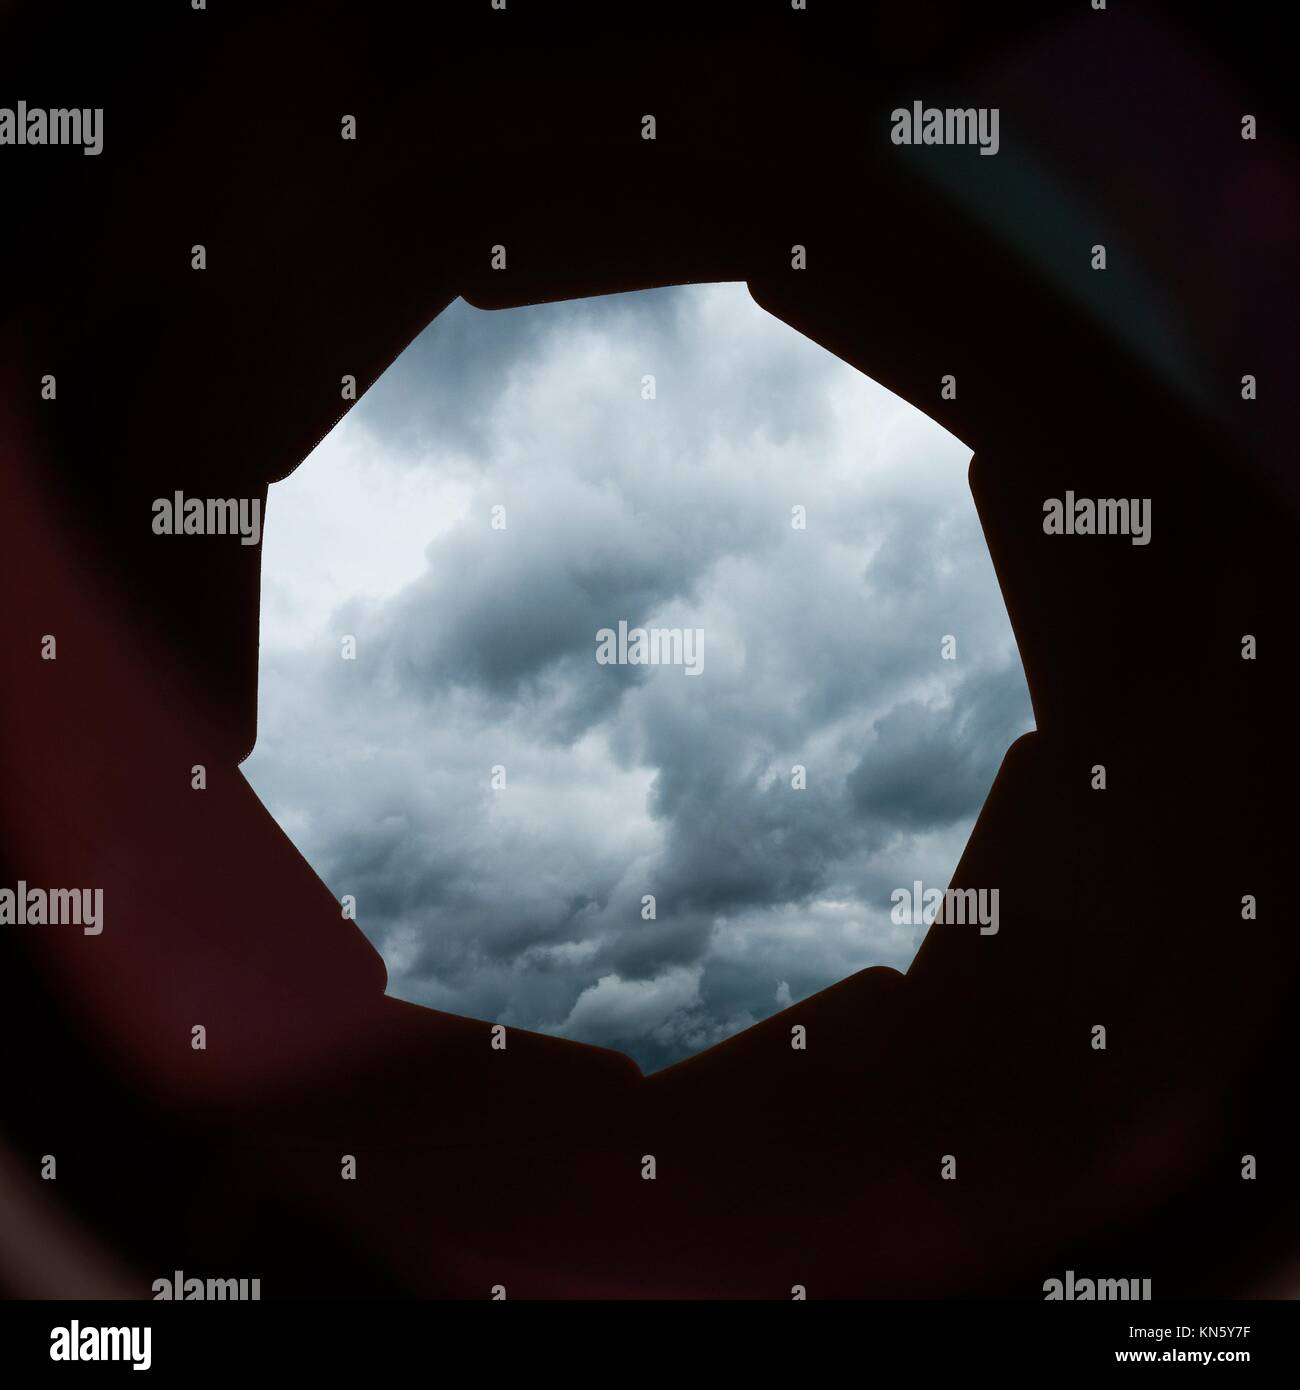 Sky with storm clouds seen through the lens and aperture of a camera. Moody and conceptual image of trouble, difficulty - Stock Image